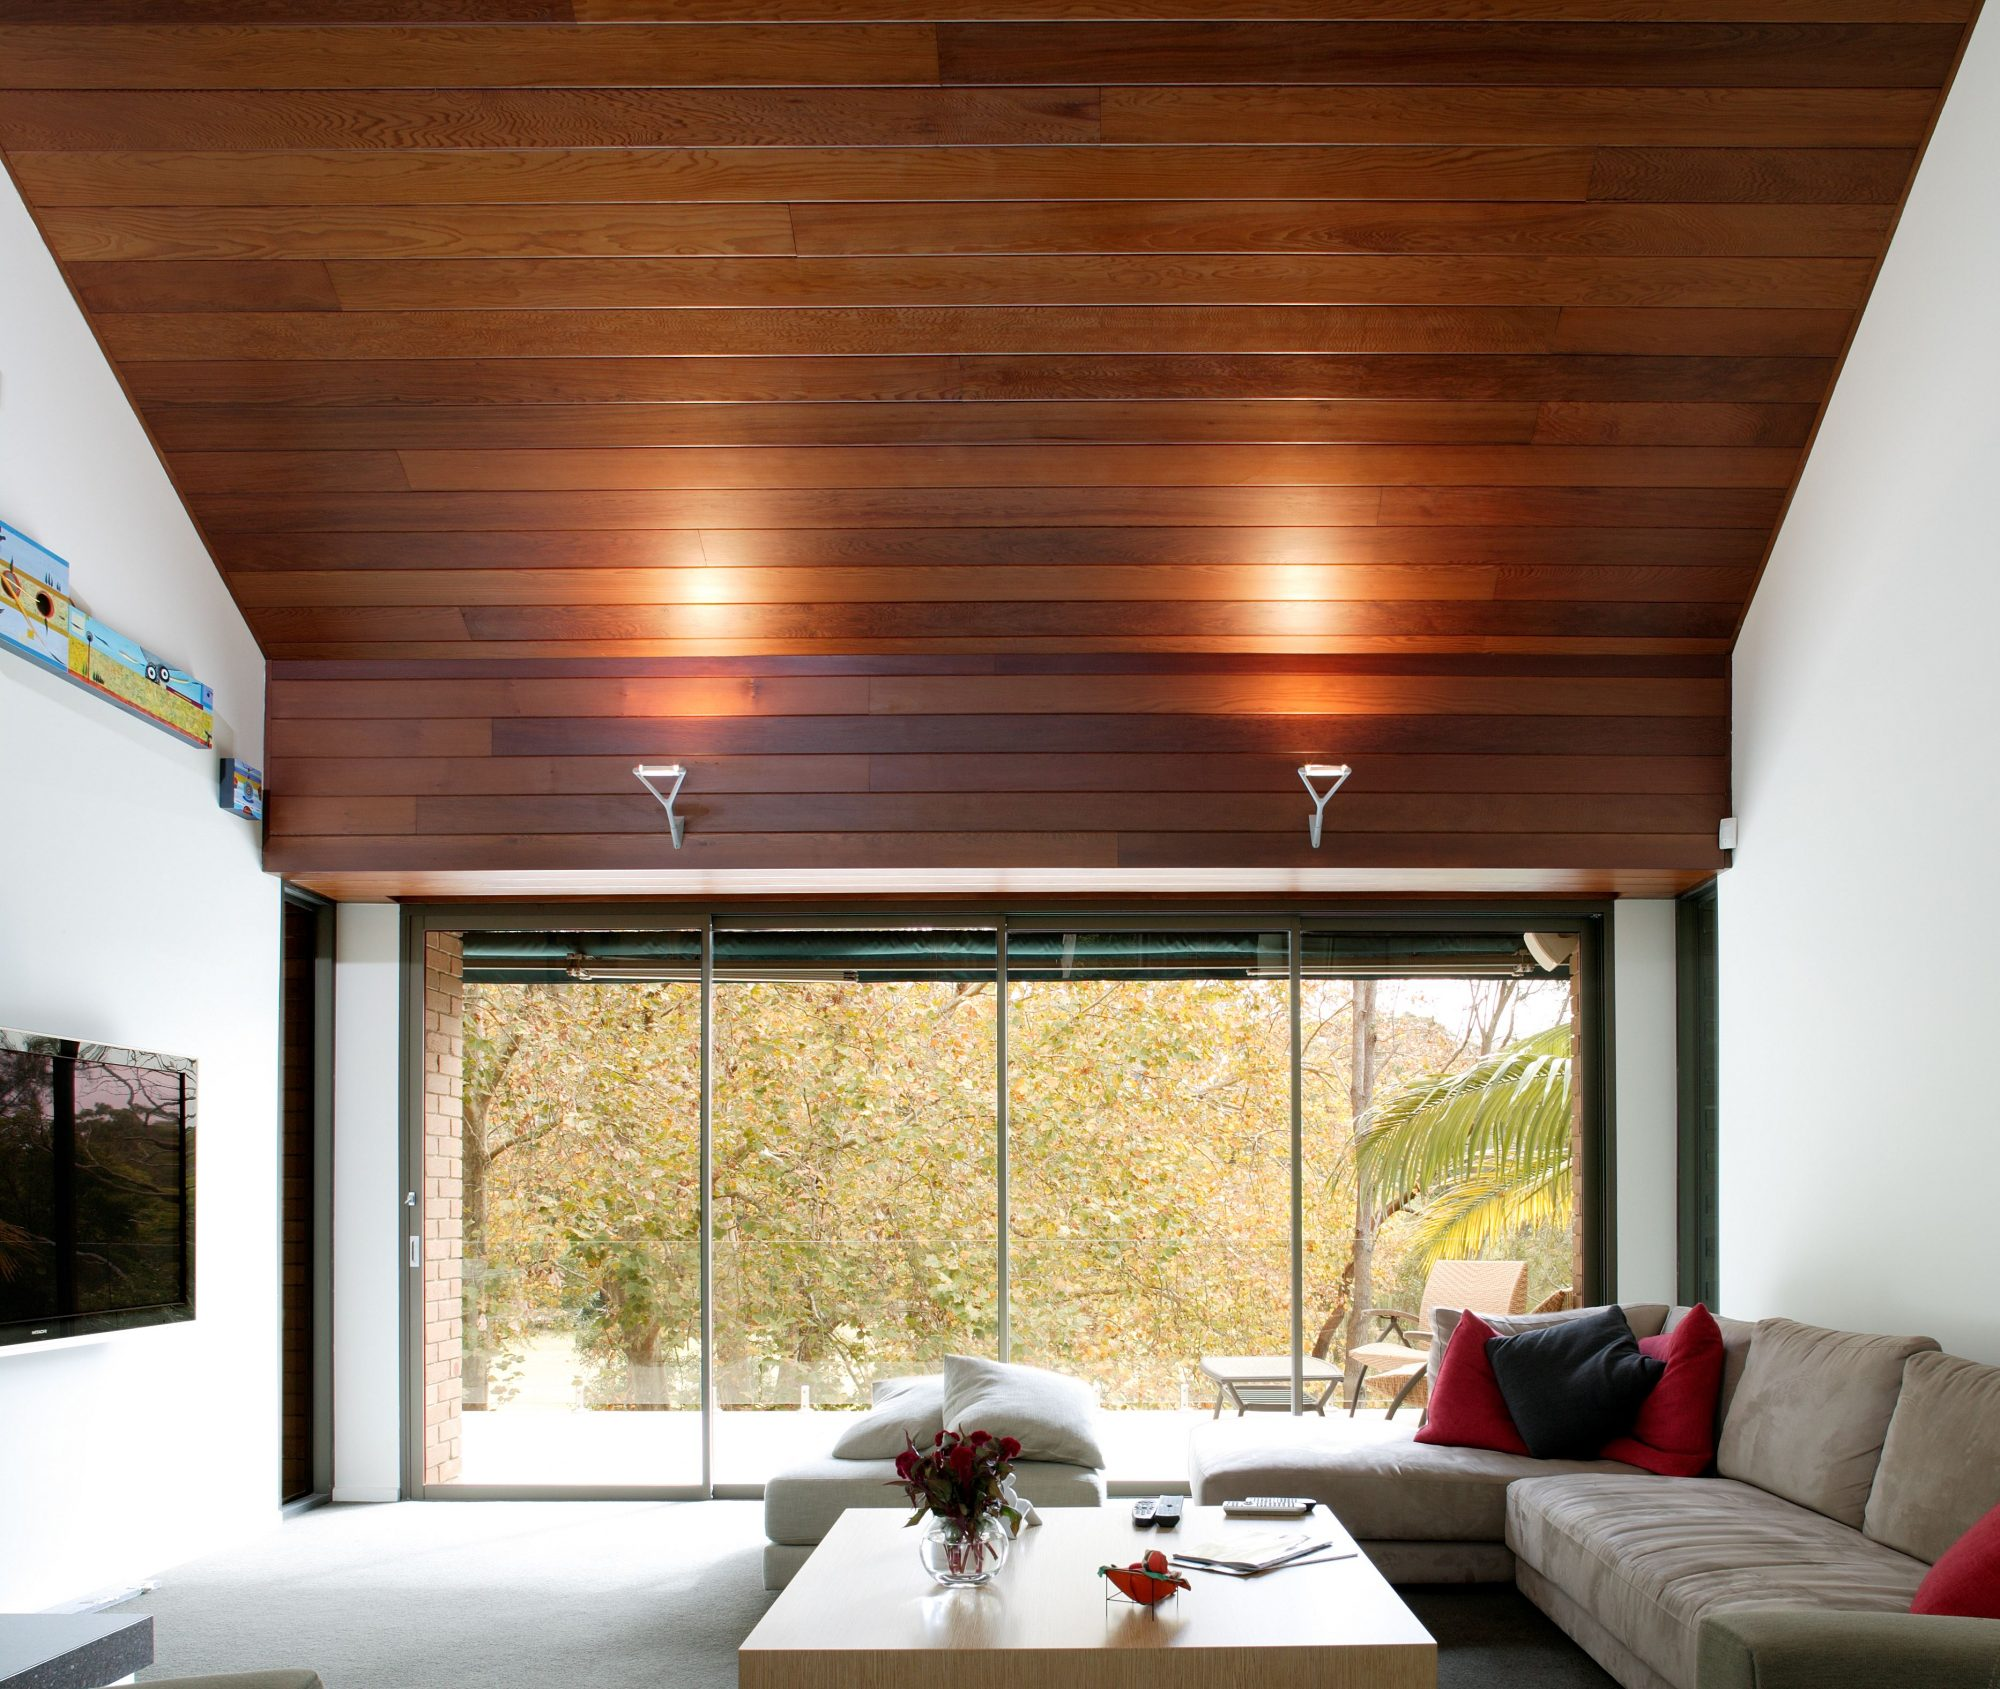 Polish and protect interior timber cladding with Sikkens wood stains